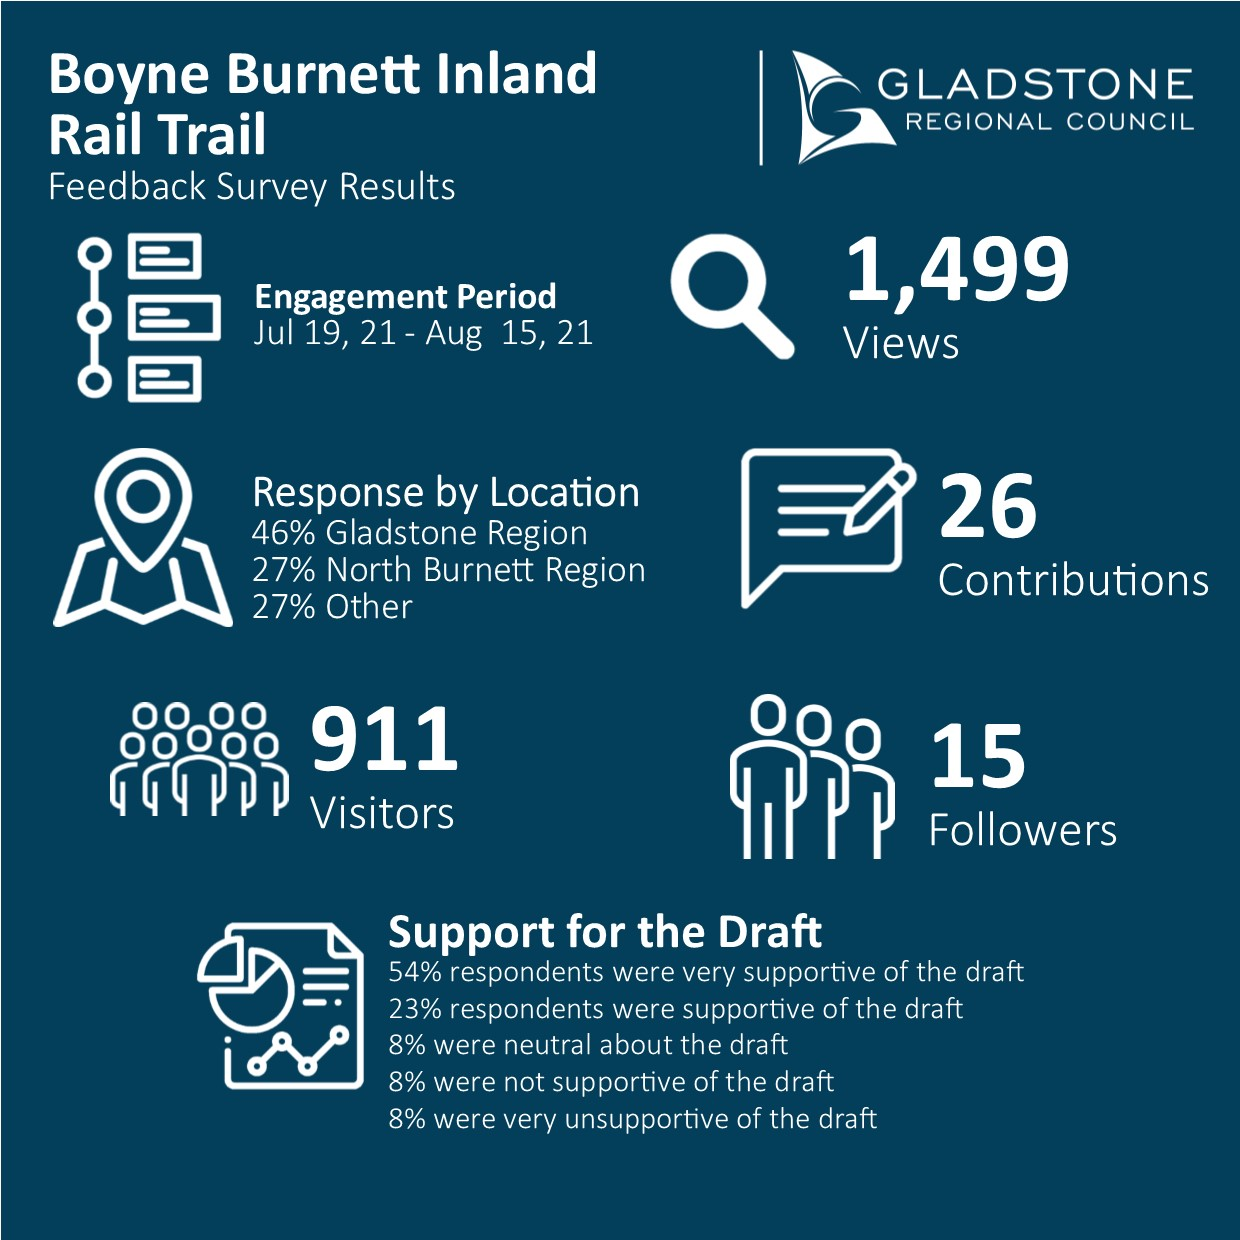 Feedback Survey Results - 77% respondents were supportive or very supportive of the draft Master Plan